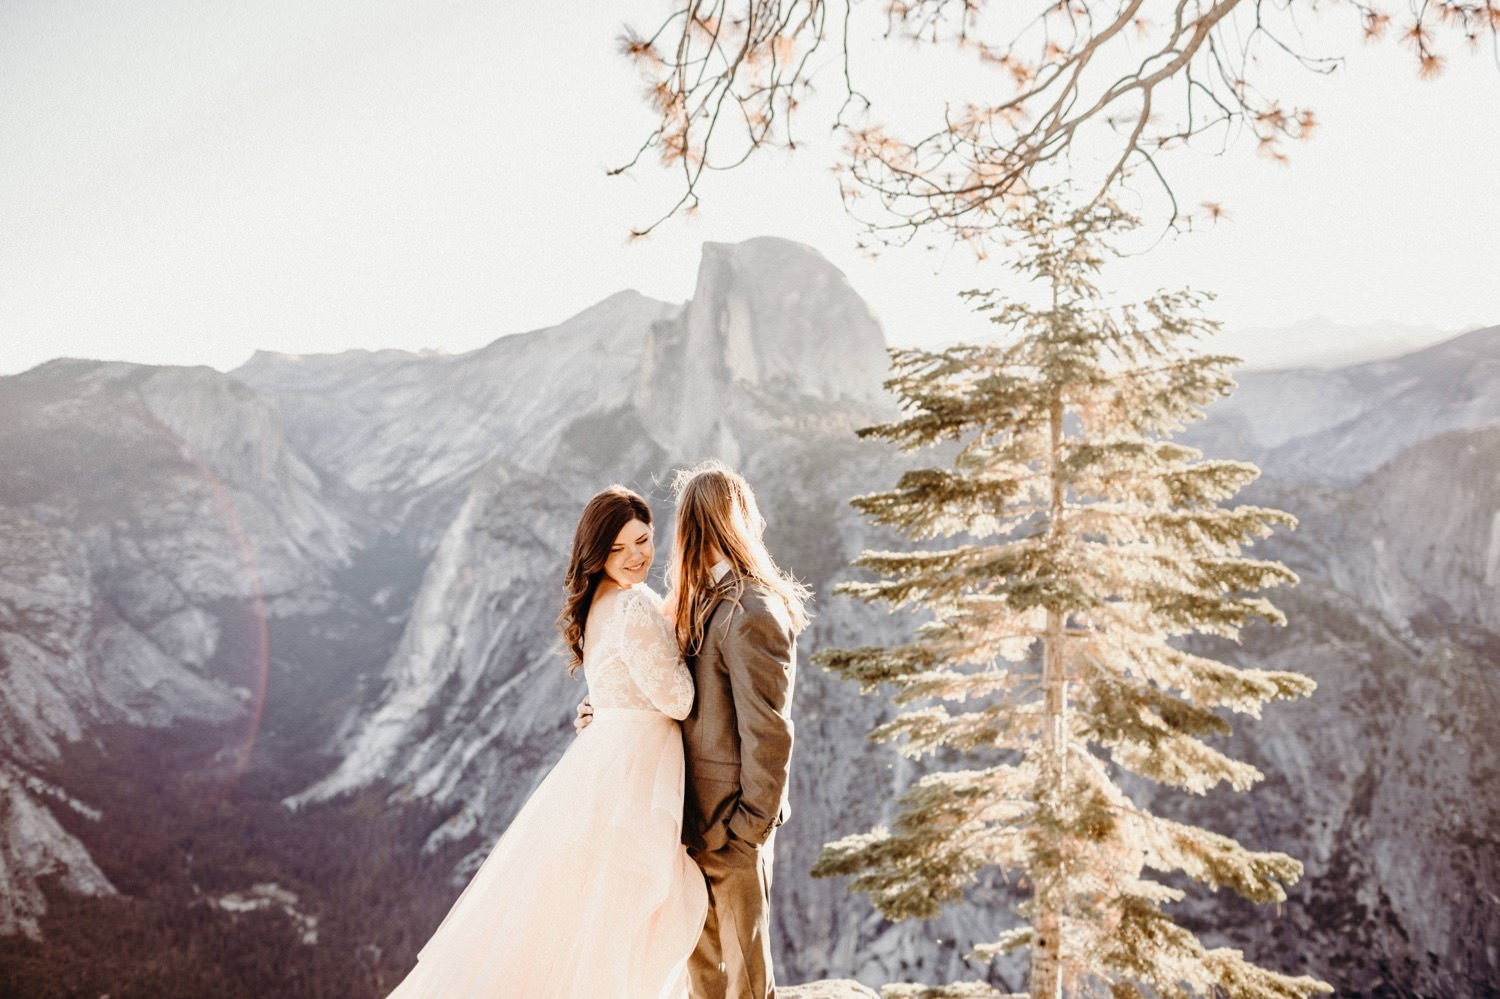 11_alex+matt-wedding-79_park_national_elopement_wedding_yosemite_intimate.jpg